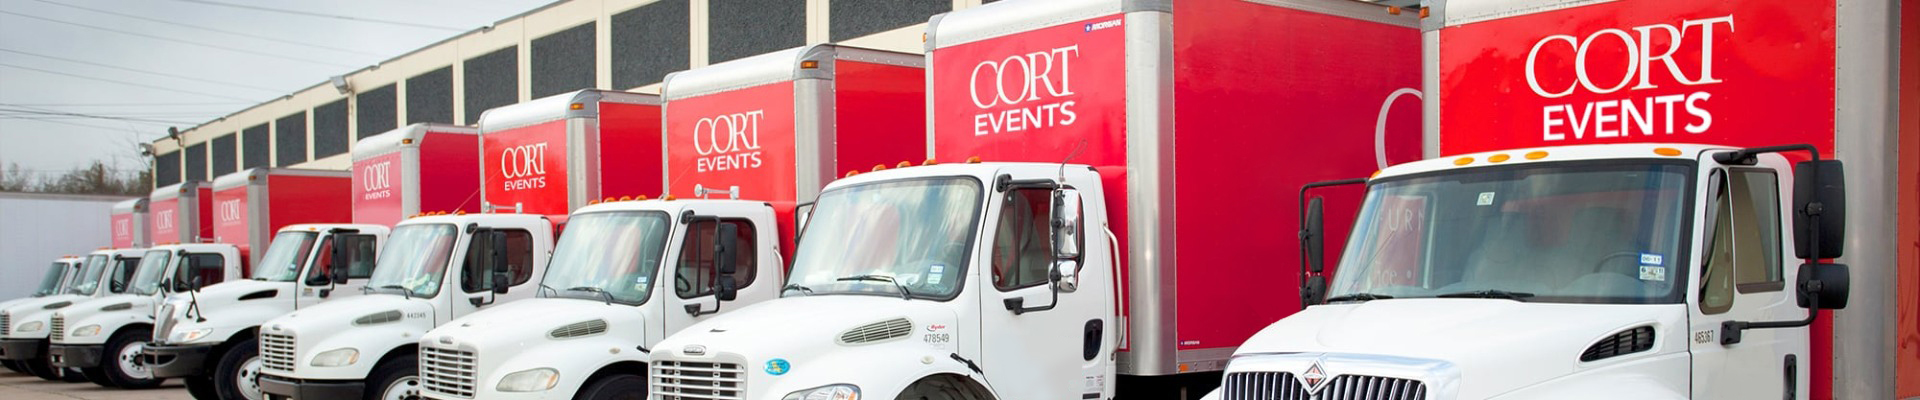 line of red CORT trucks